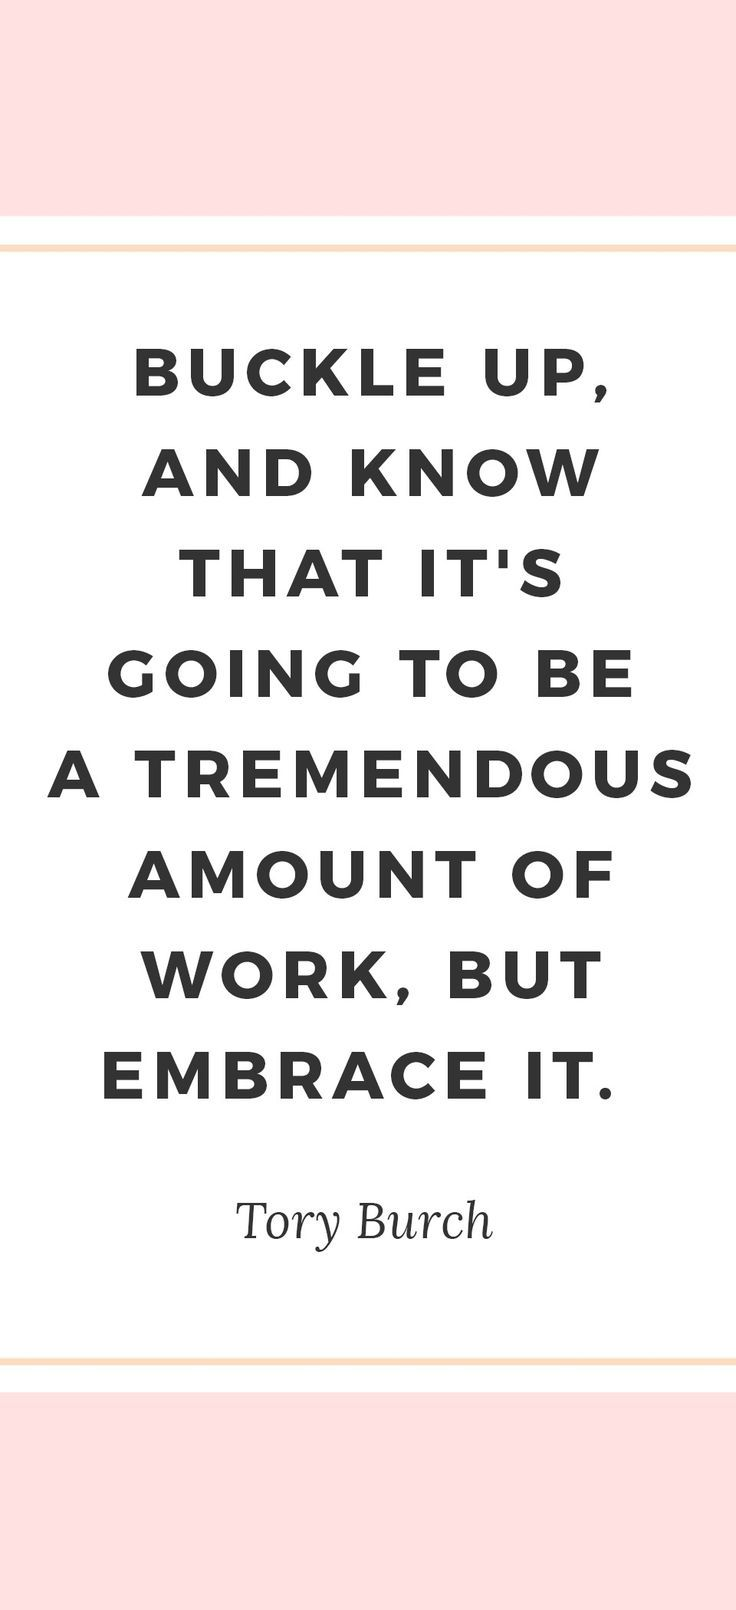 Buckle up, and know that it's going to be a tremendous amount of work, but embrace it. - Tory Burch | The best girl boss quotes, girl boss, girlboss quotes, girlboss inspiration